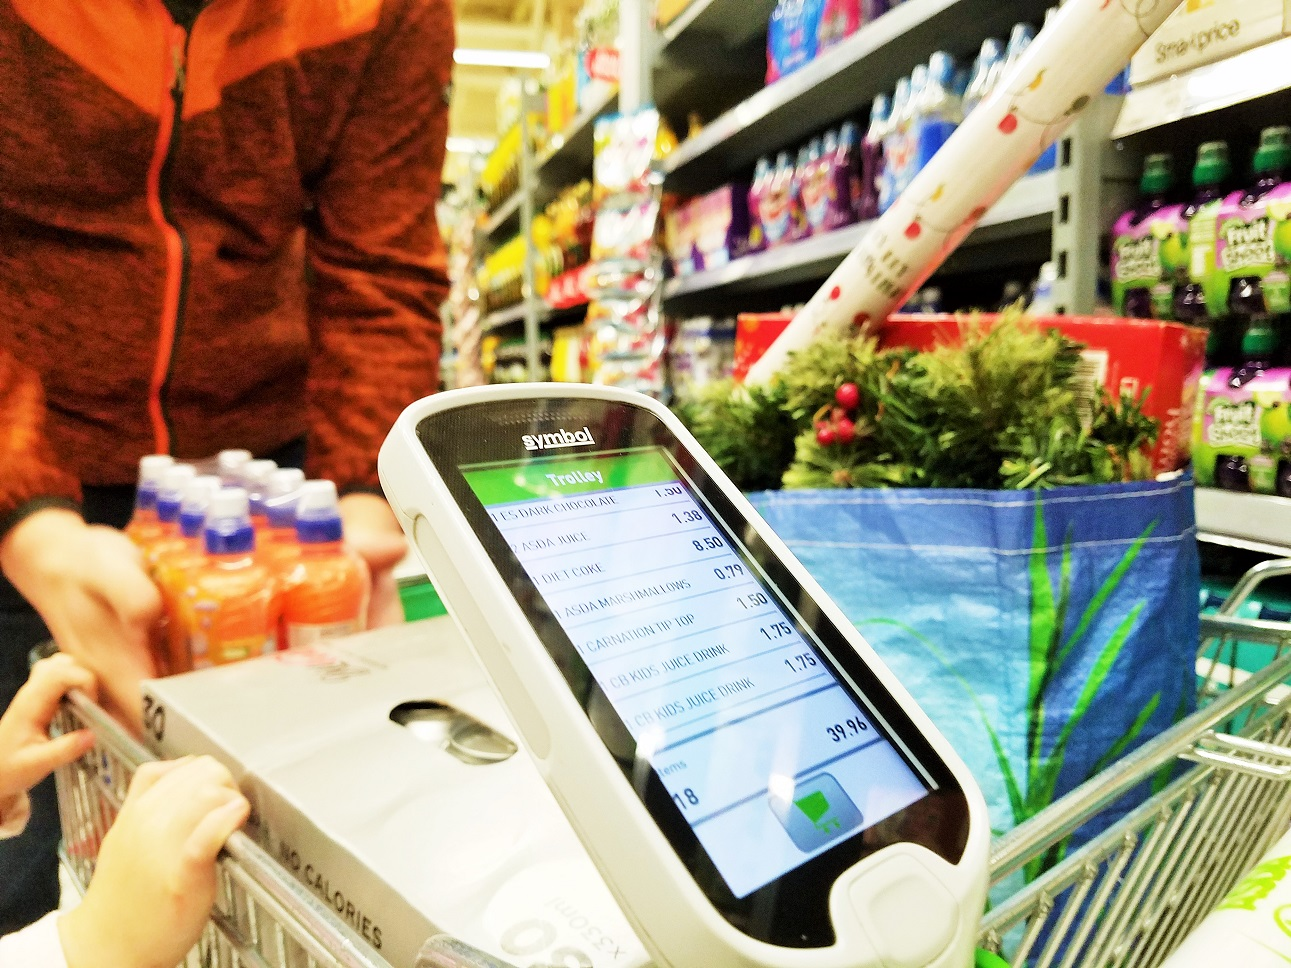 scan and go device in trolley